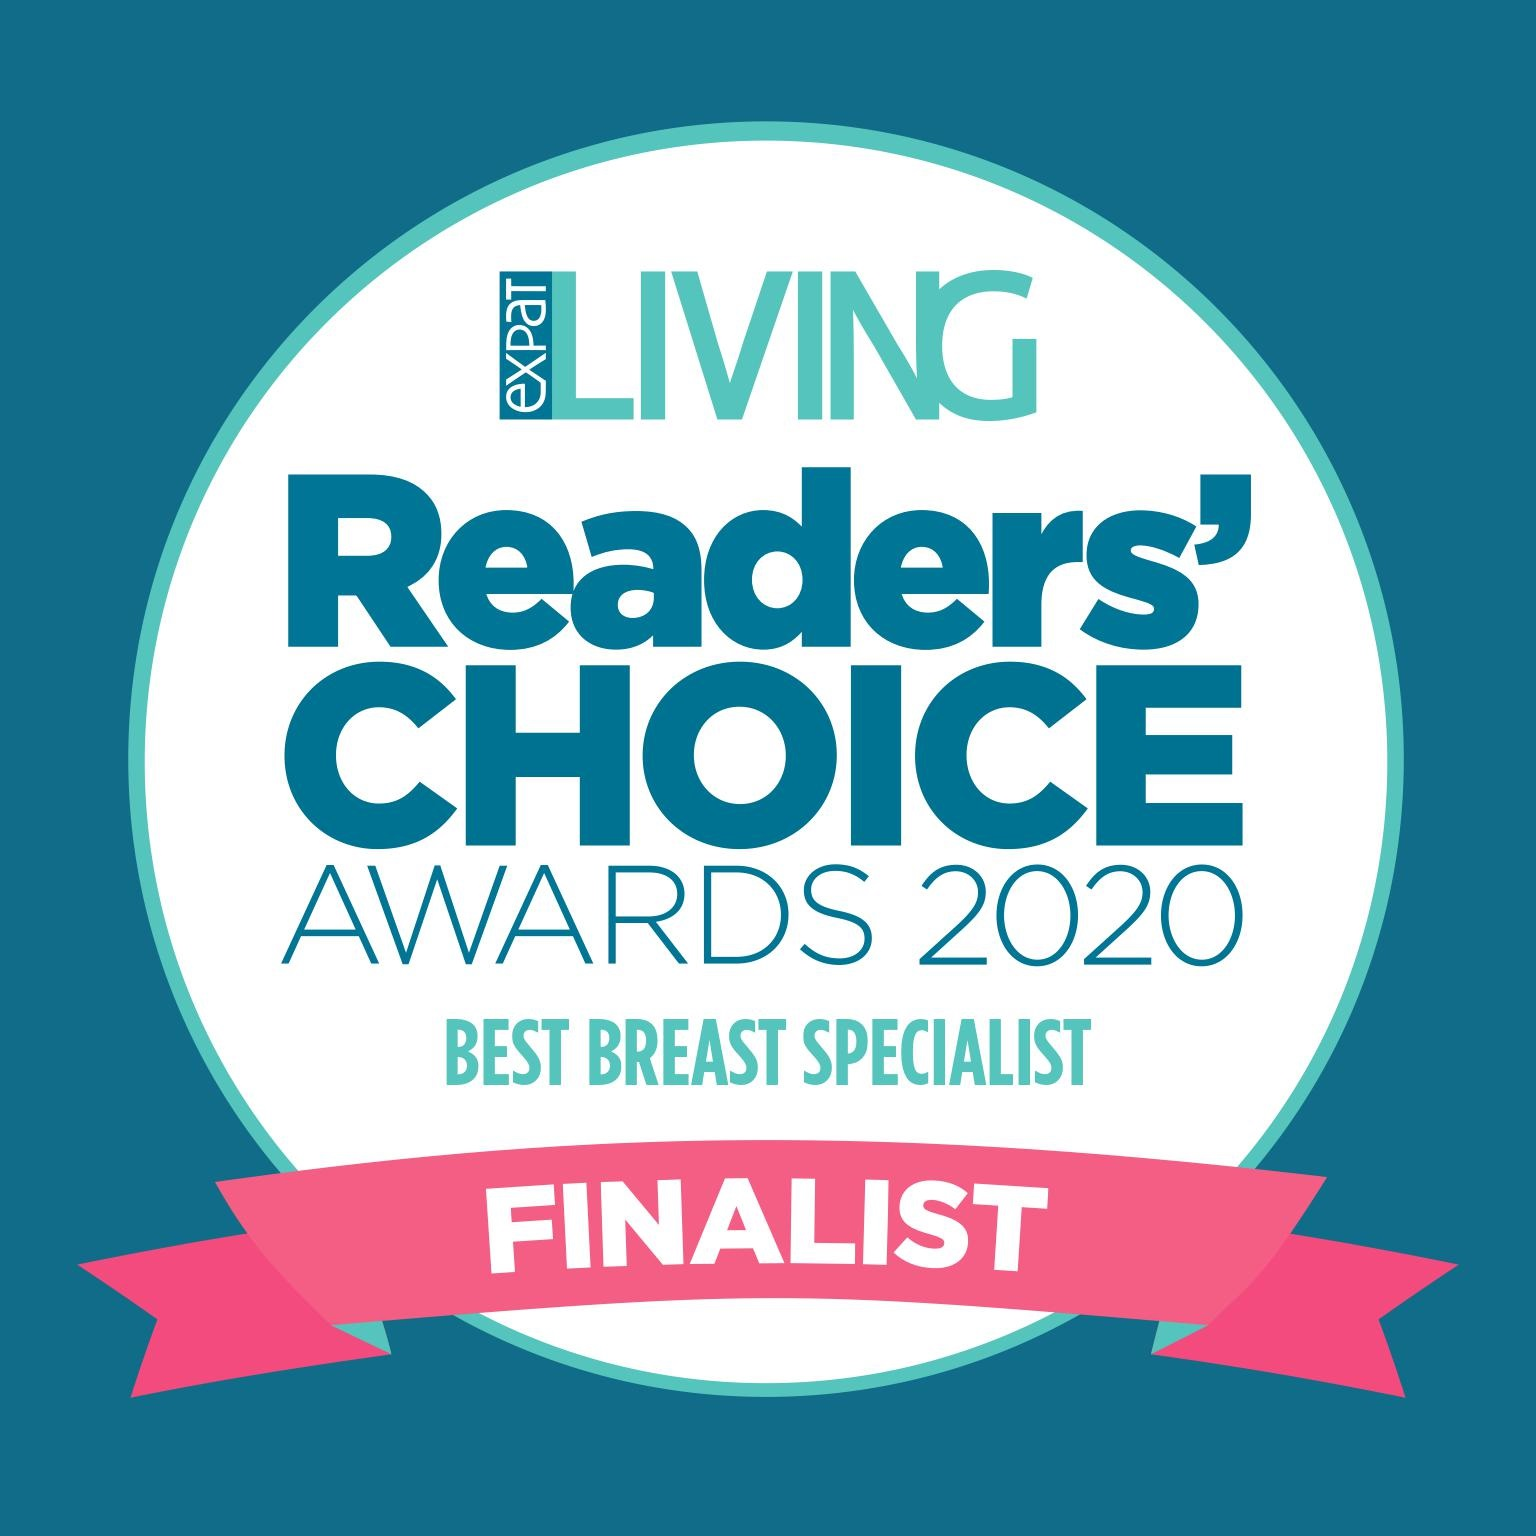 We're a Finalist in Expat Living's Readers' Choice Awards 2020!